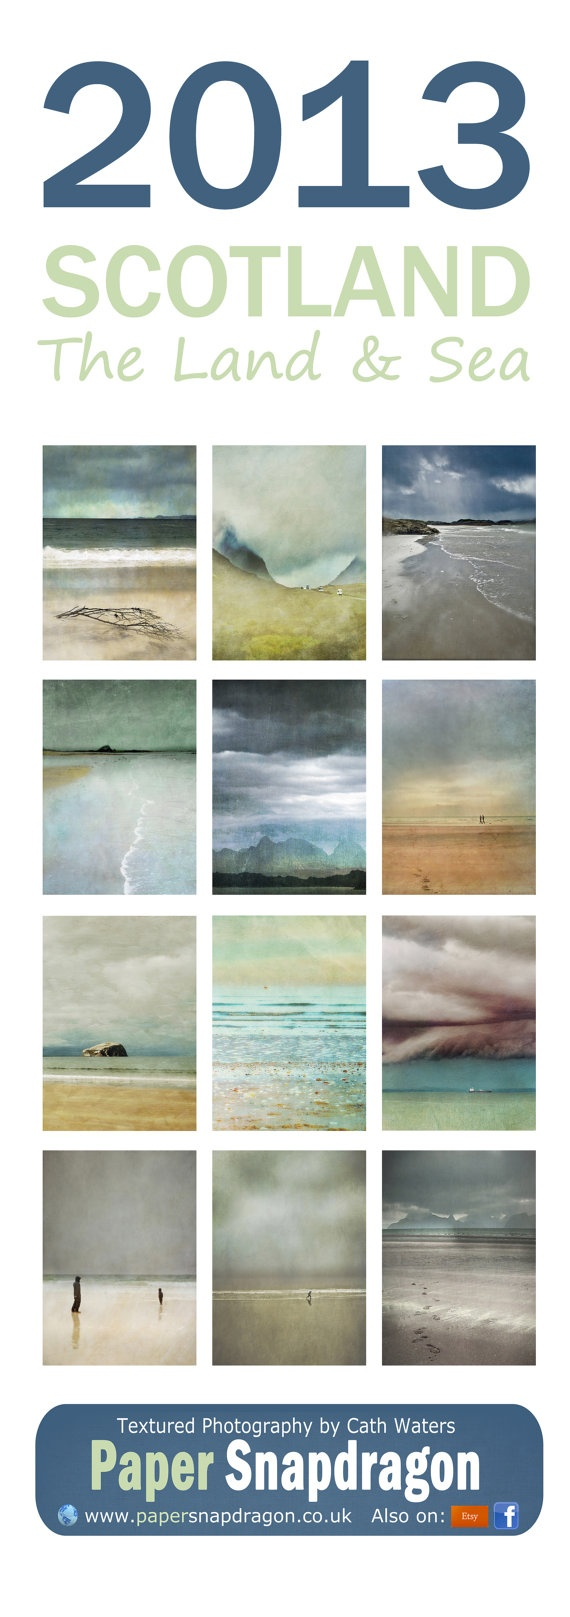 Scottish Landscape and Seascape 2013 Wall Calendar by PaperSnapdragon, £12.99